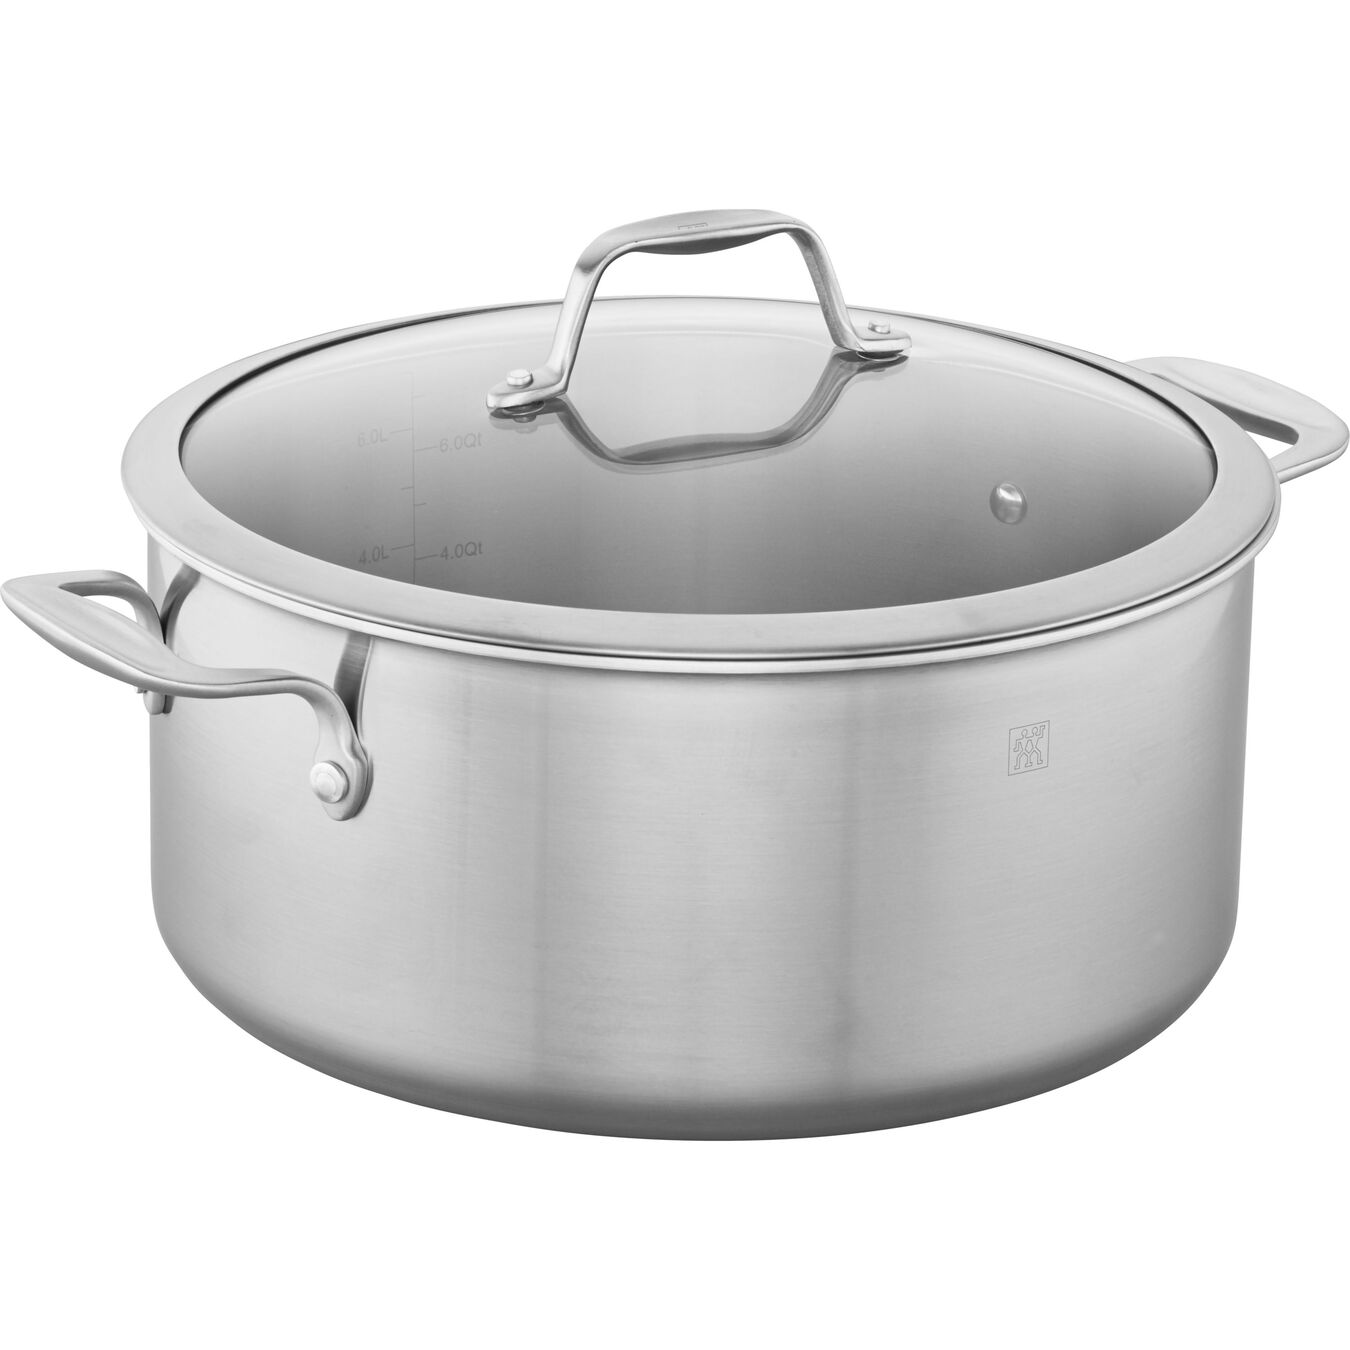 3-ply 8-qt Stainless Steel Stock Pot,,large 1